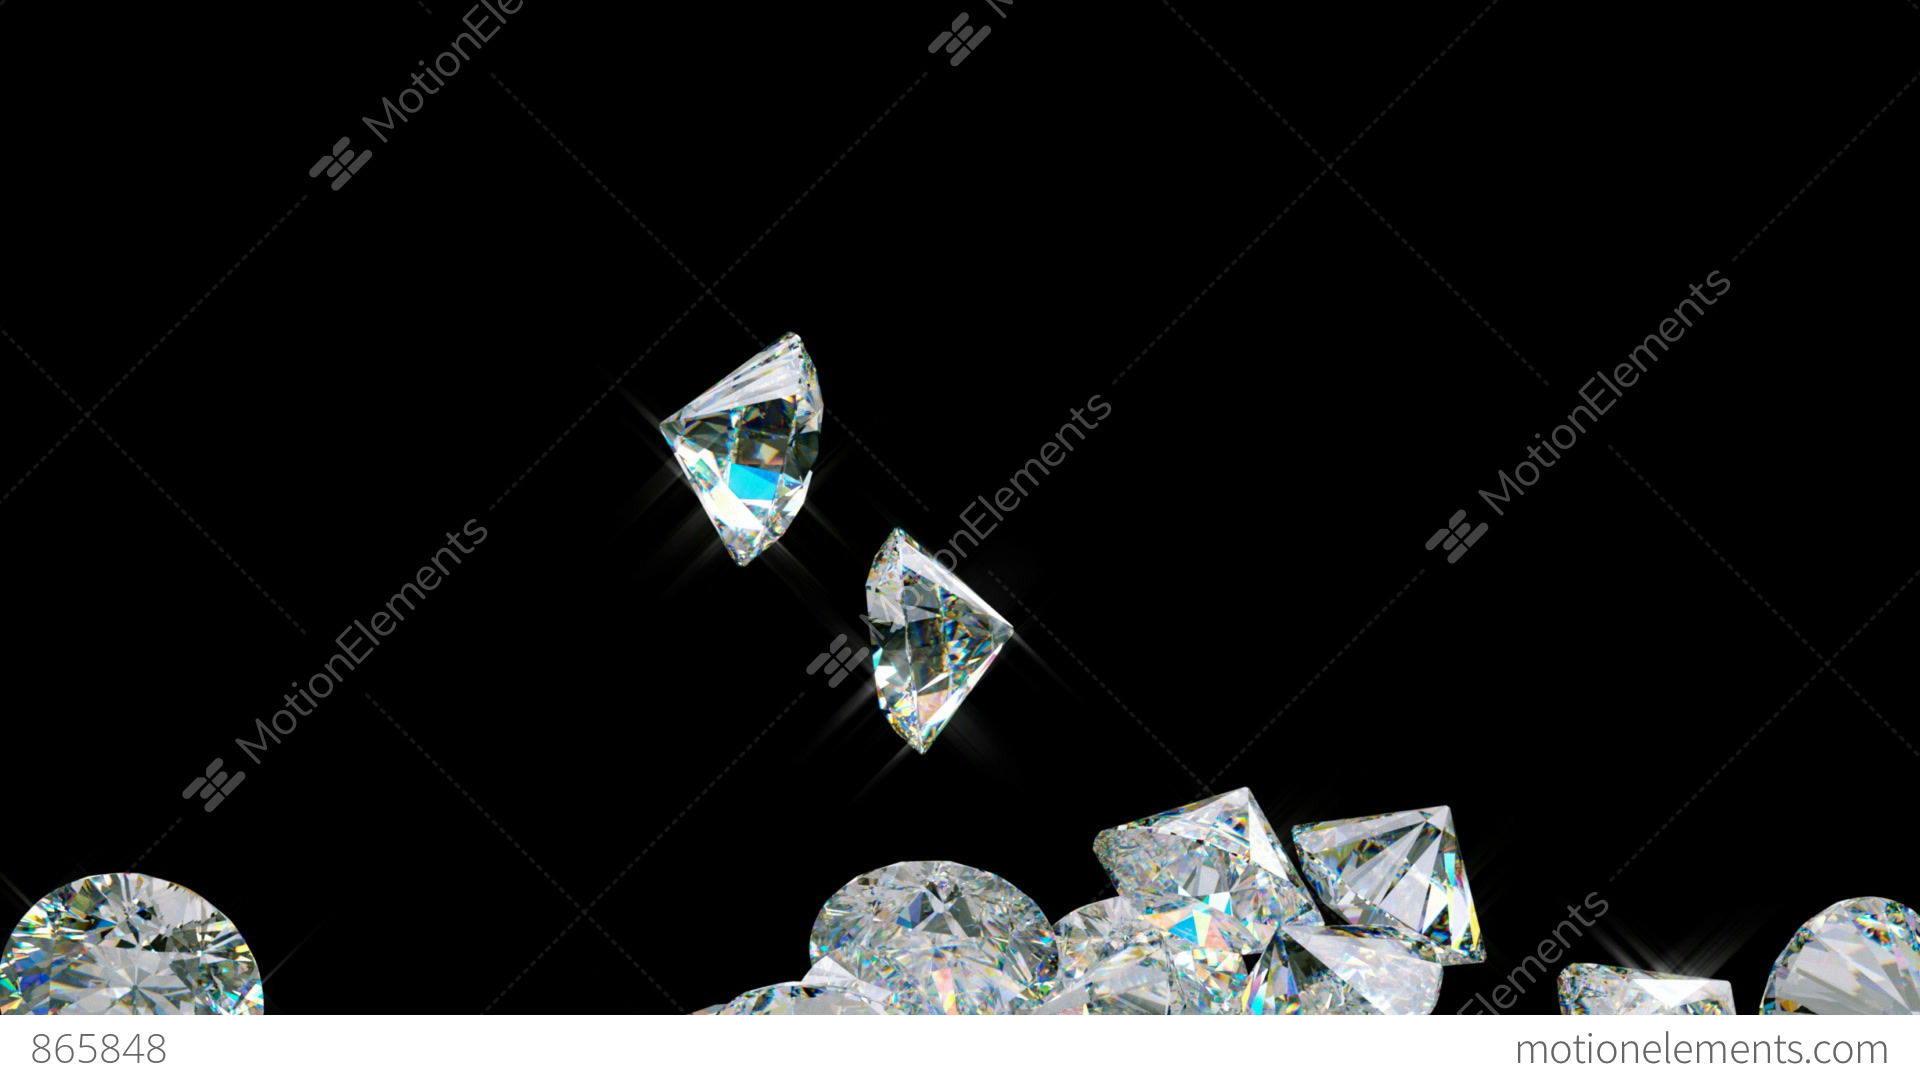 very diamond so loose have to wait my in moissy with carbon replace fb set beautiful brilliant gem forever it got t can filled is included spots topic this